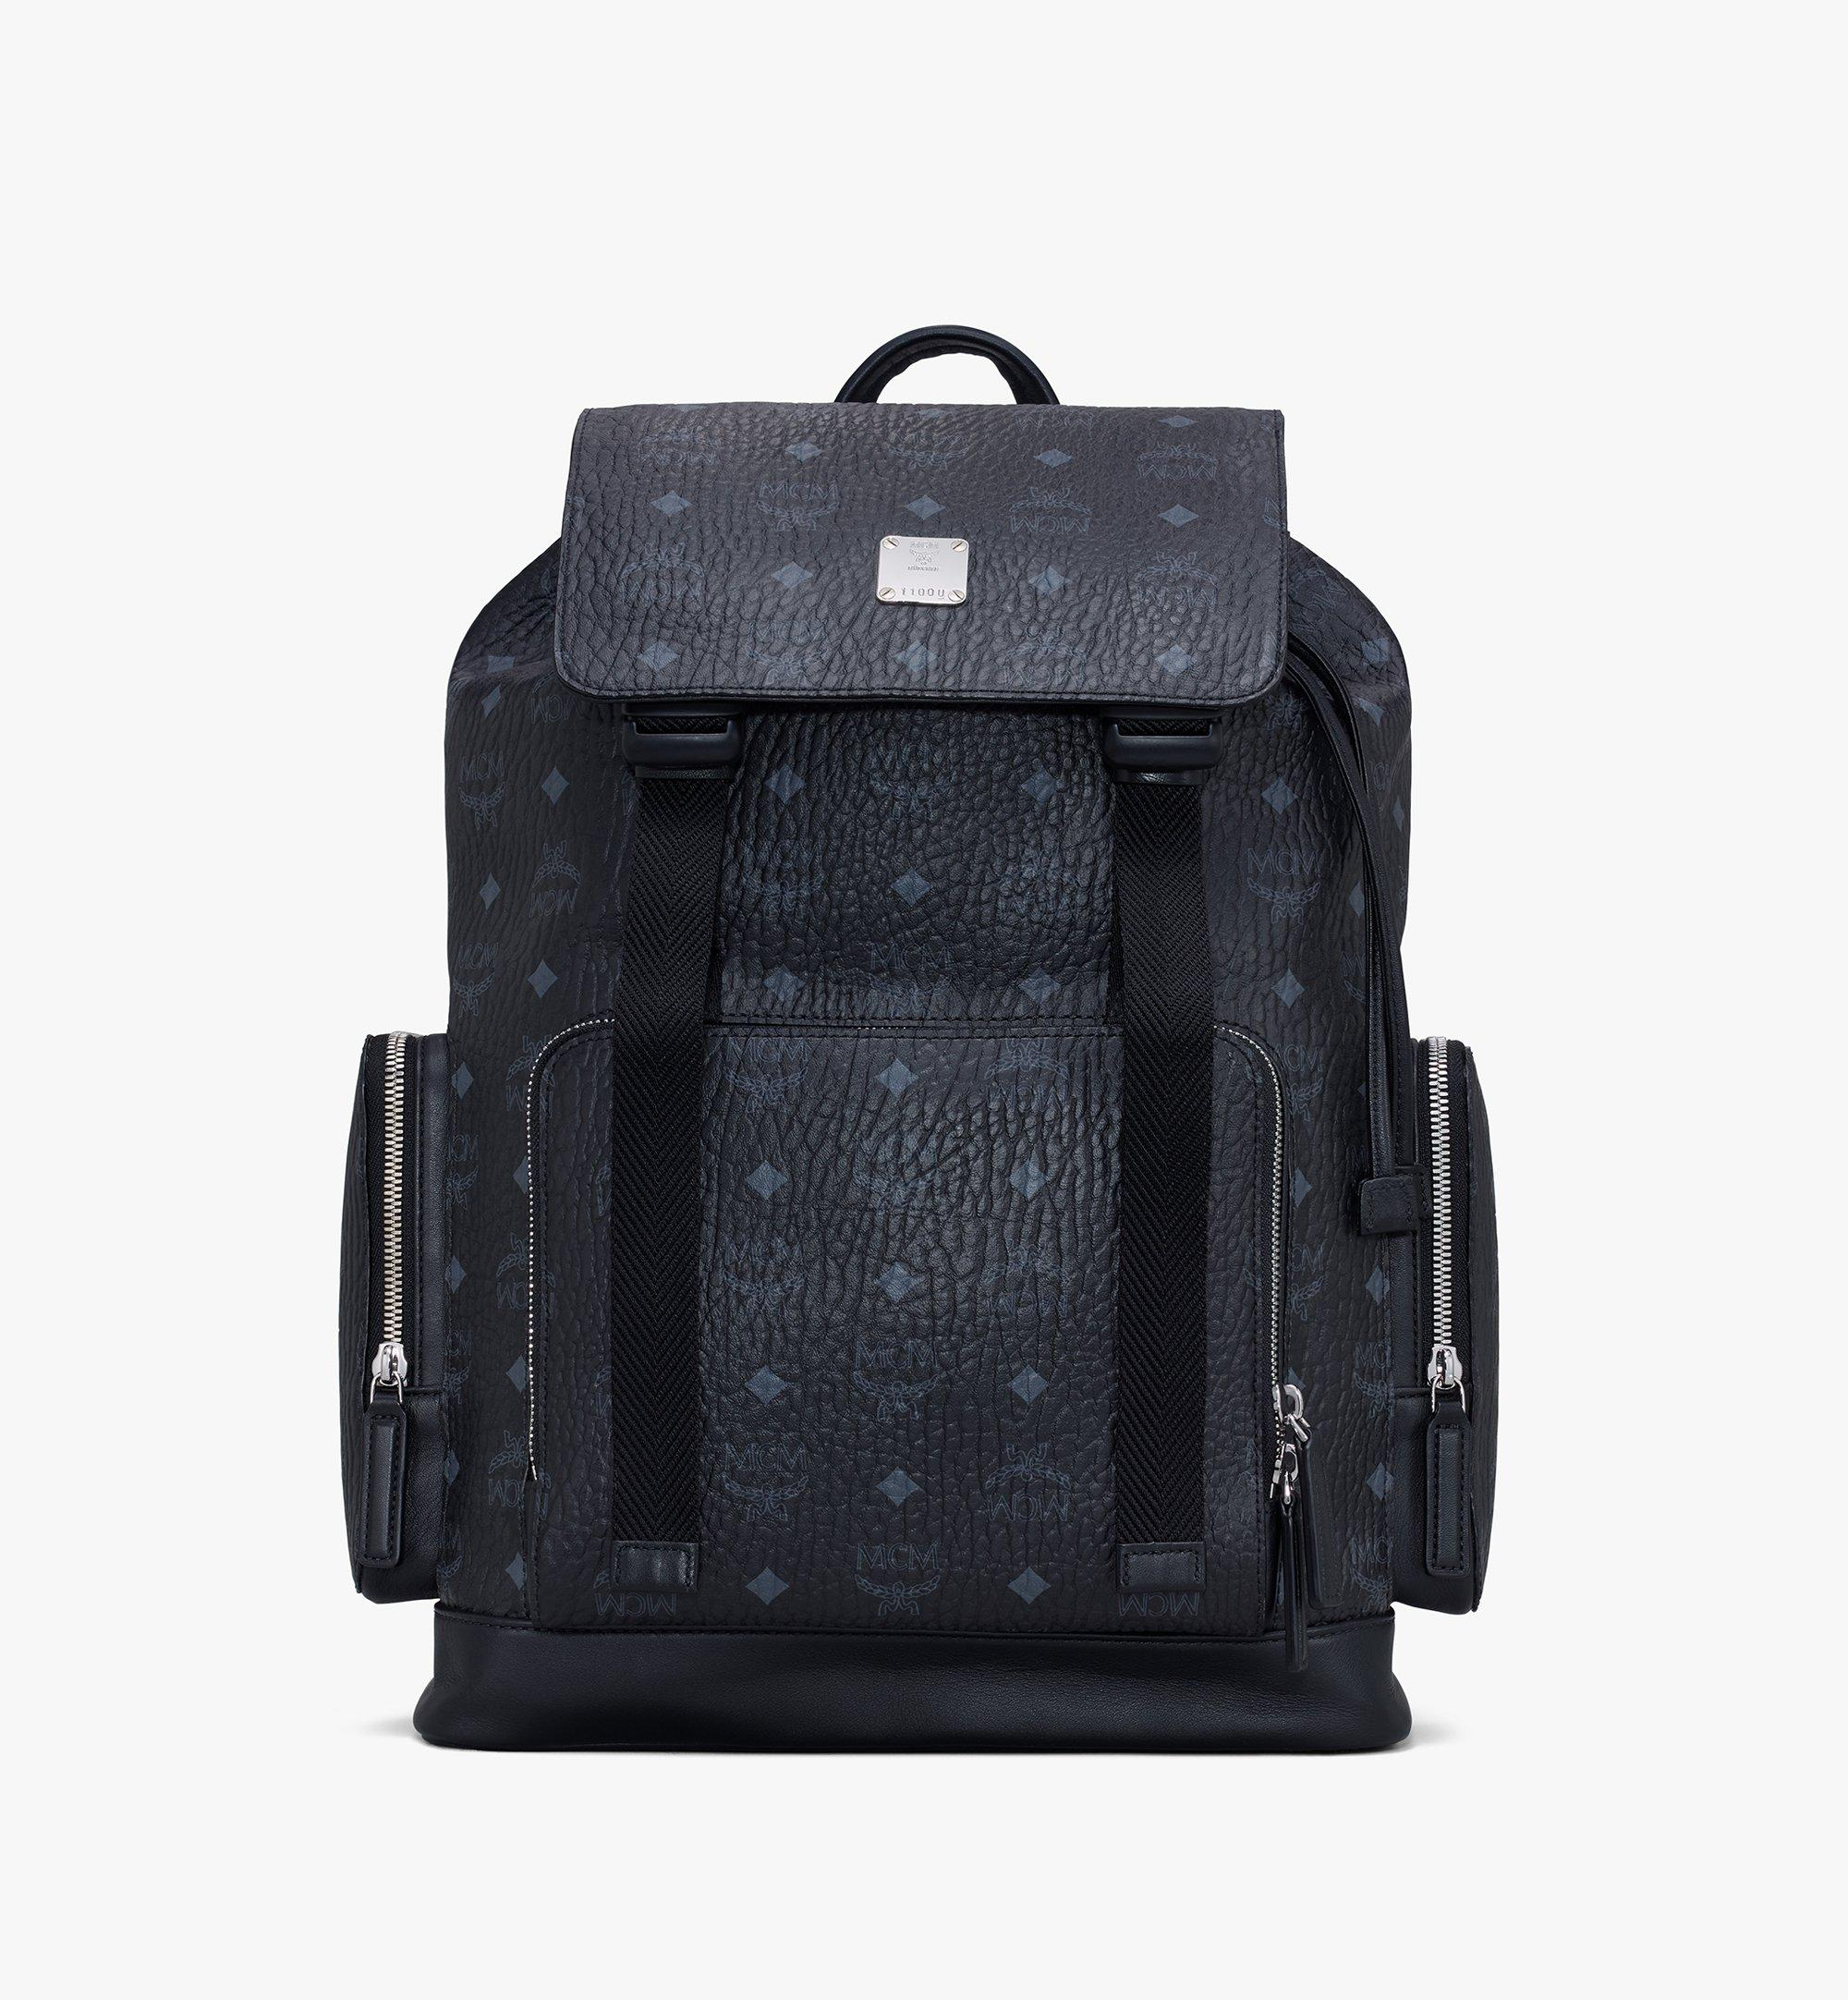 Medium Brandenburg Rucksack in Visetos Black | MCM® DE